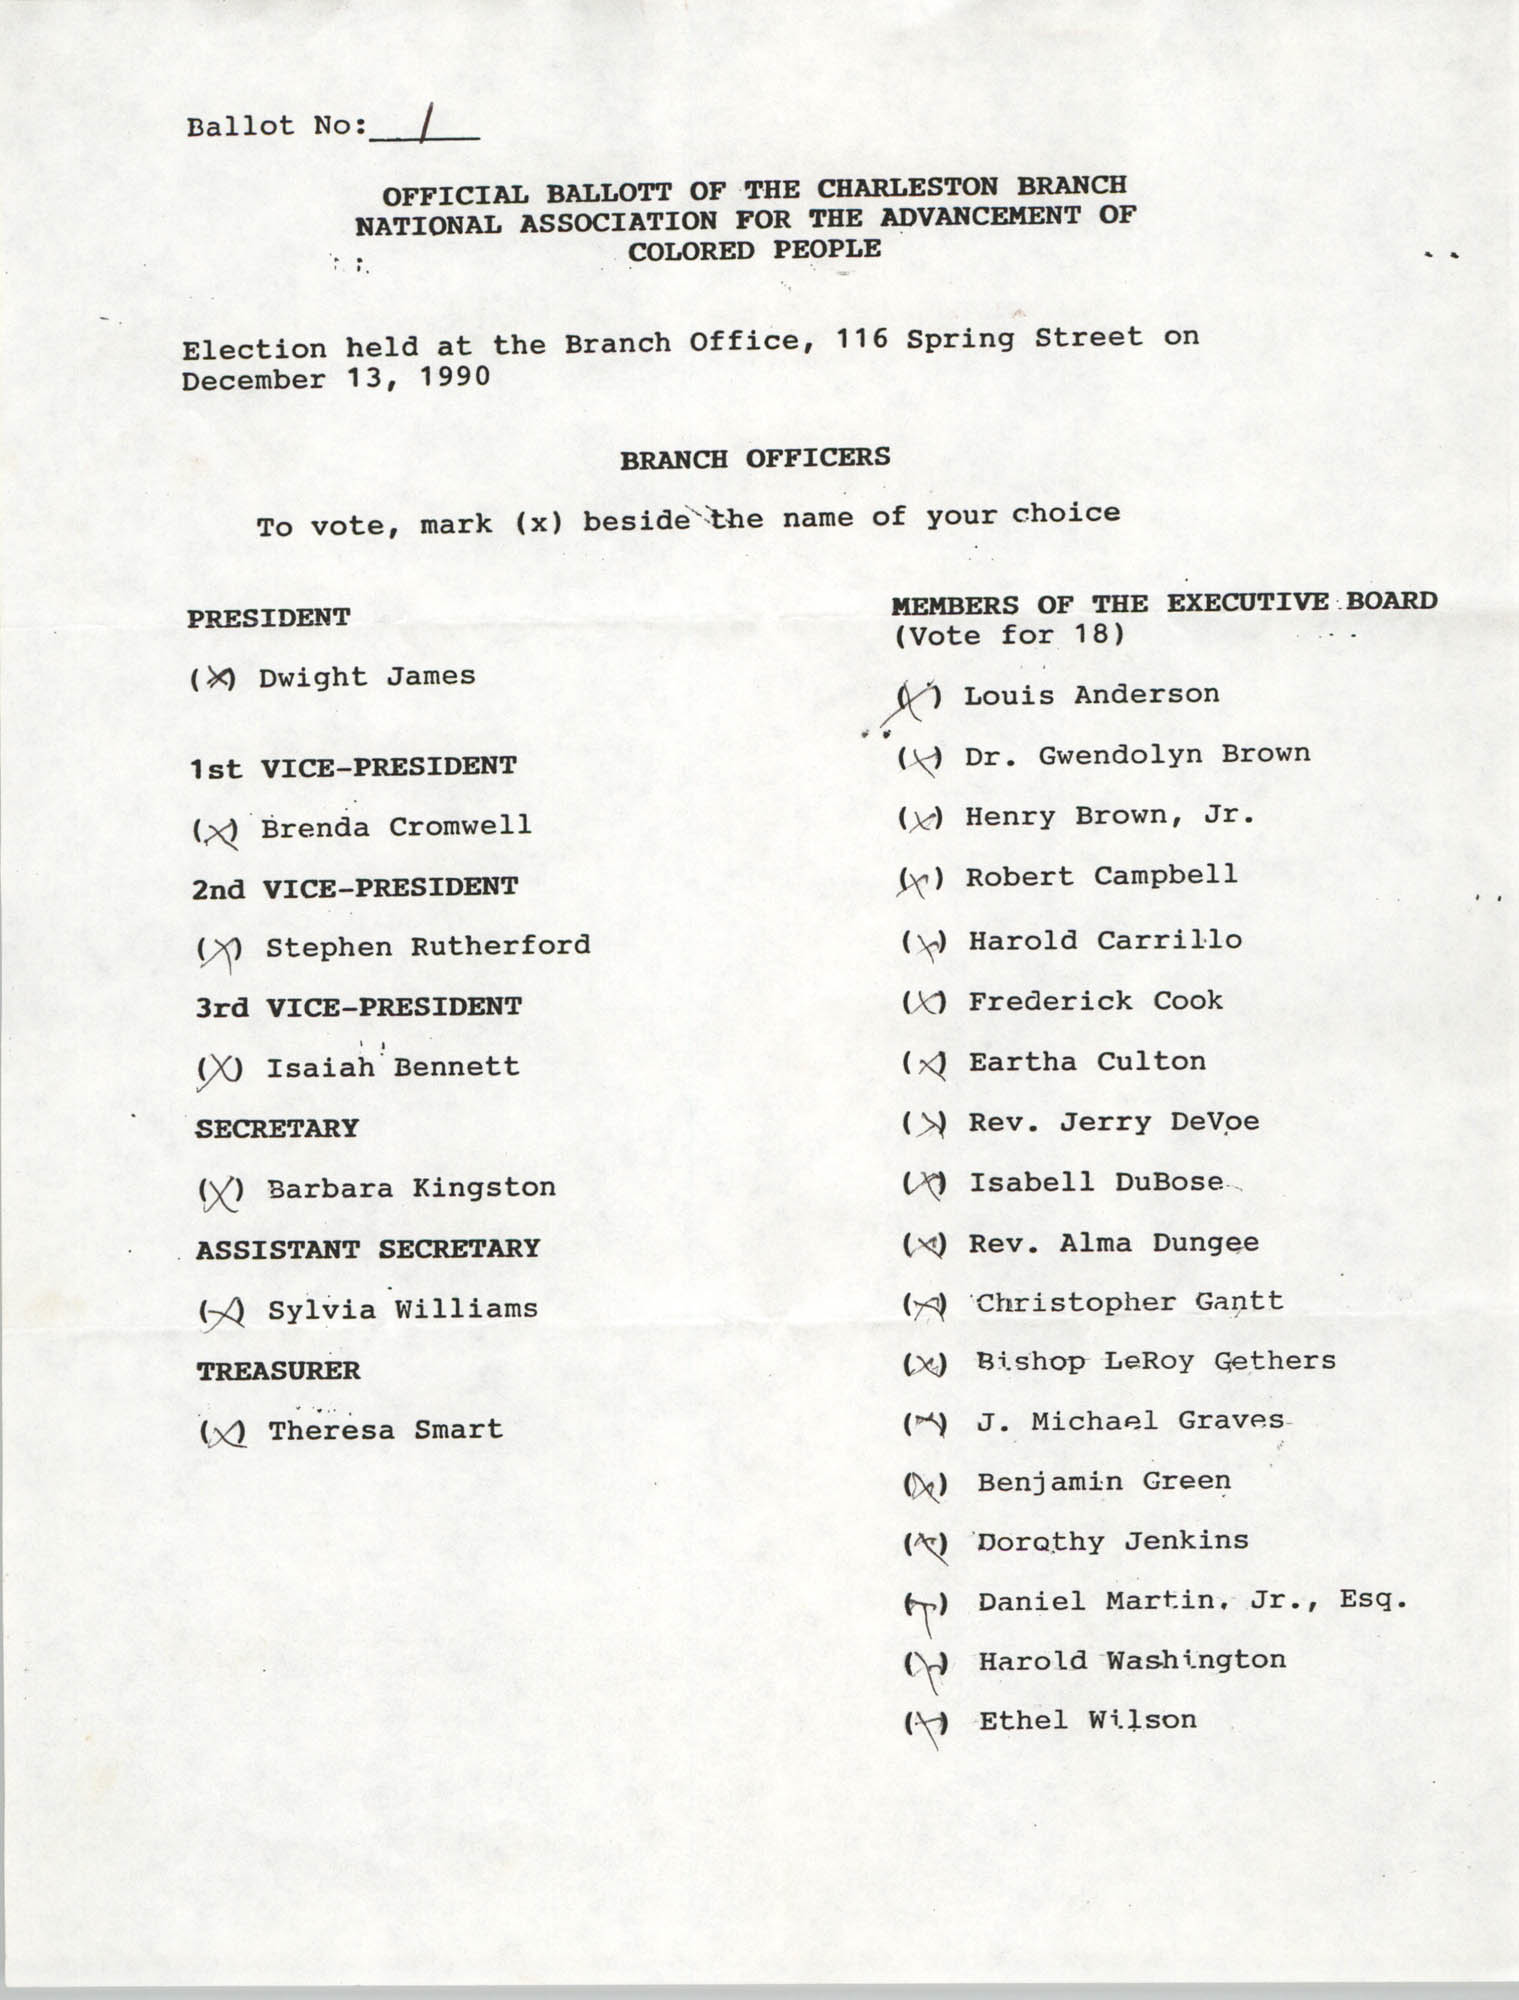 Official Ballots of the Charleston Branch of the NAACP, 1